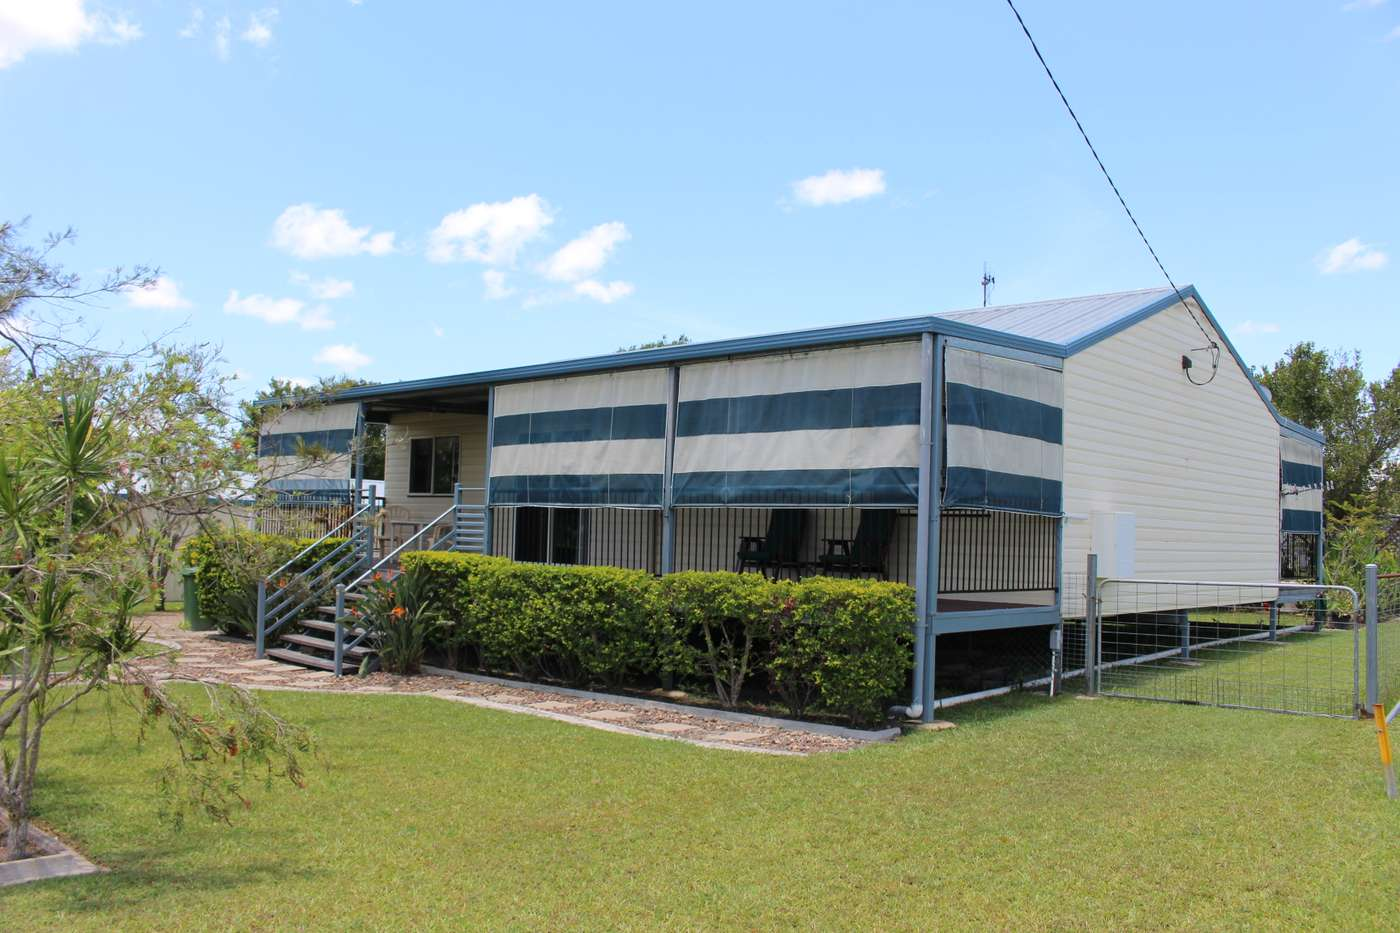 Main view of Homely house listing, 4 Cutty Sark Court, Cooloola Cove, QLD 4580